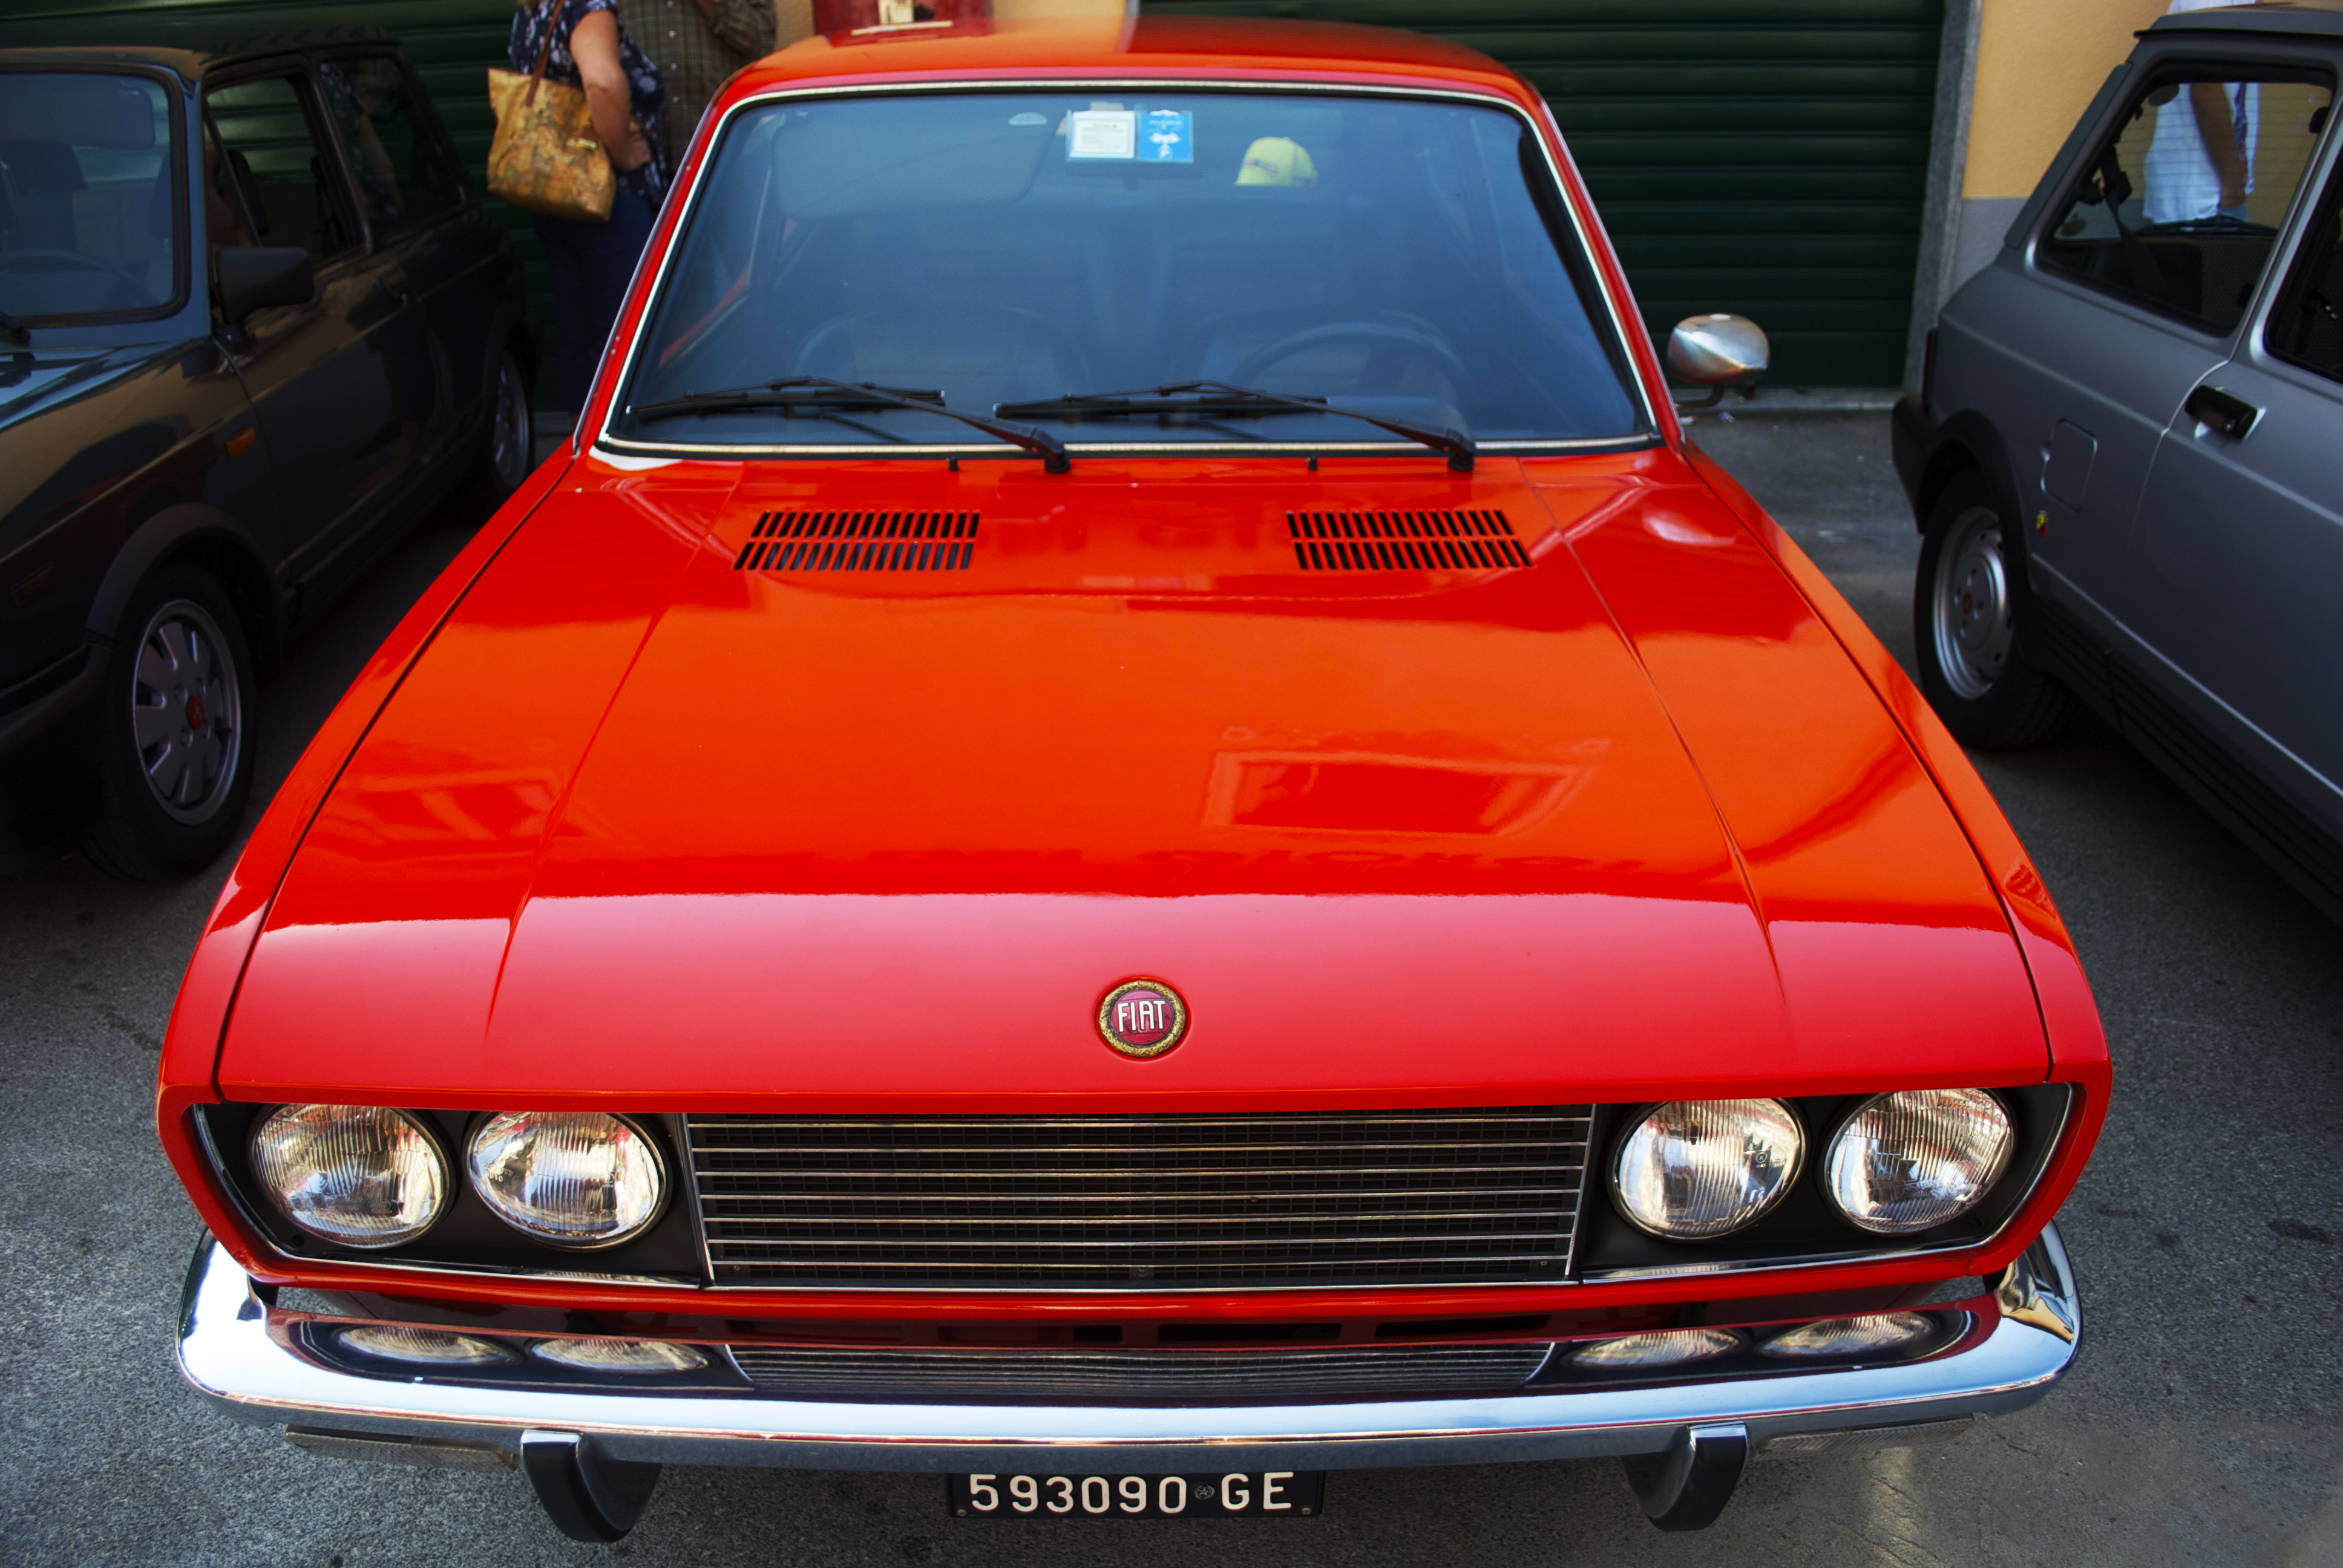 Fiat Specialam Aufdem Konzeroldund L C C E E B besides Originally Posted By Mikesride View Post Cd likewise Fiat Sport Coup S Large likewise Fiat further . on fiat 128 sport coupe